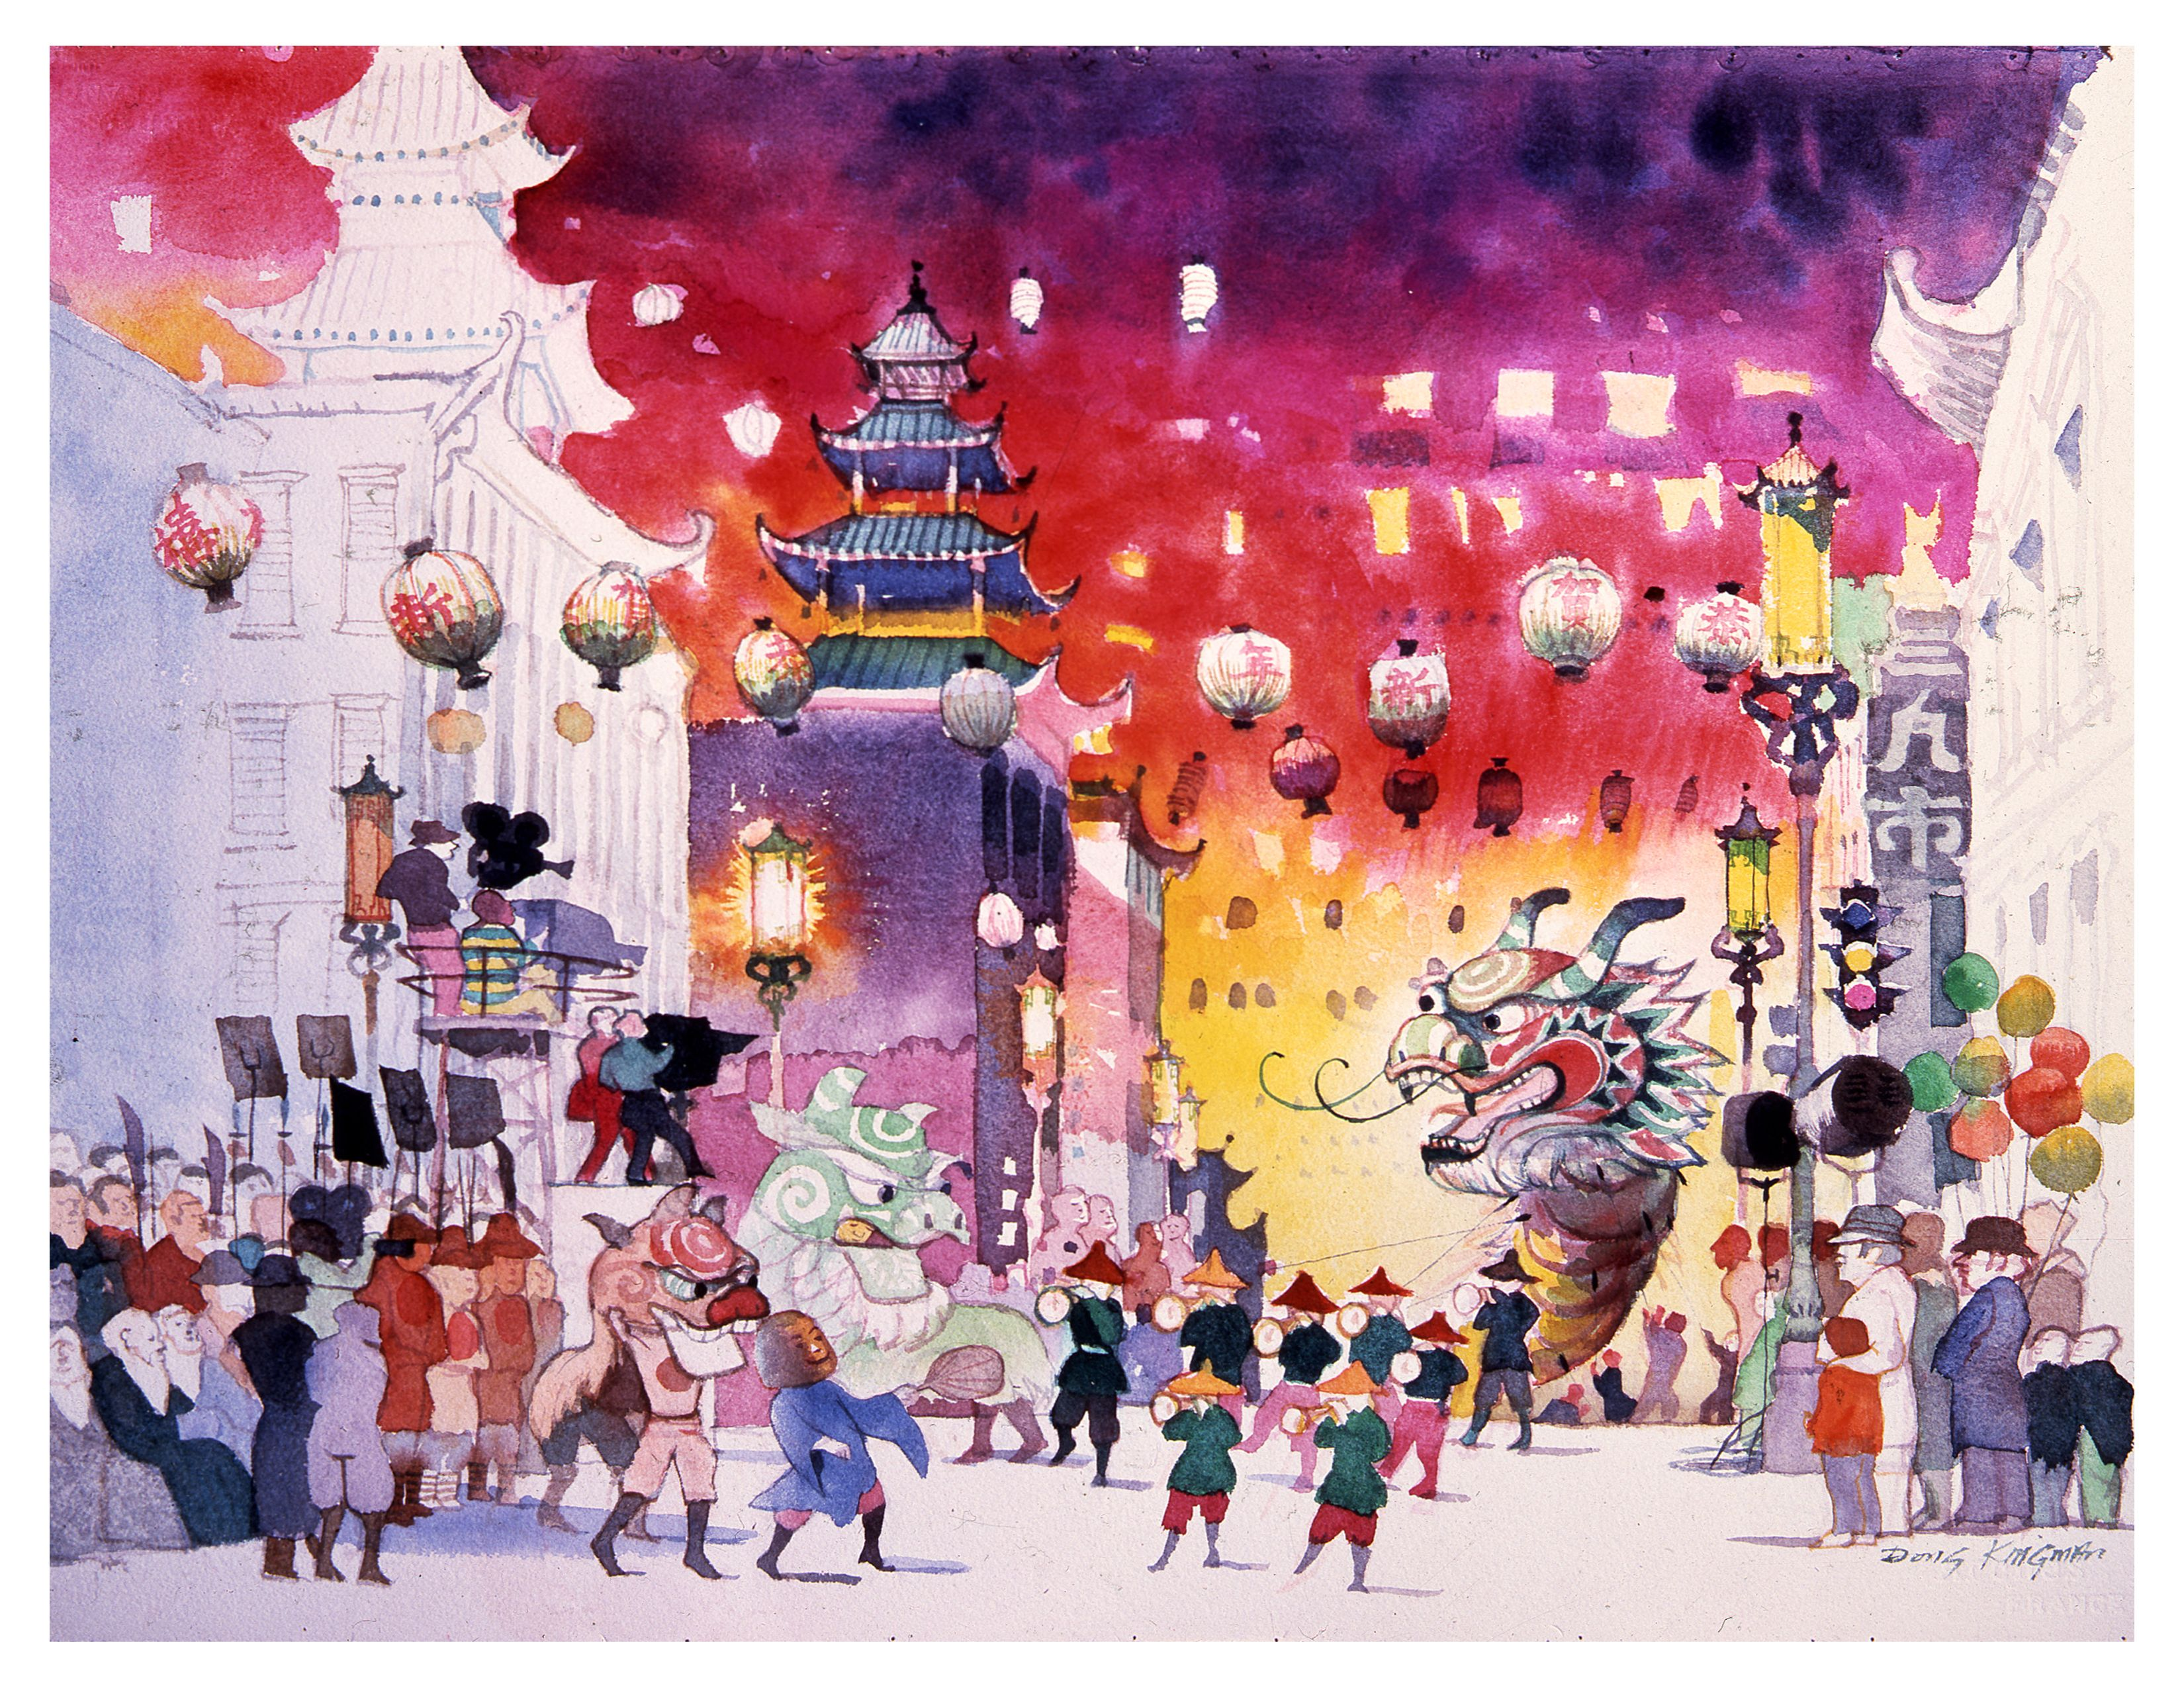 Chinatown San Francisco Festival, watercolor by Dong Kingman